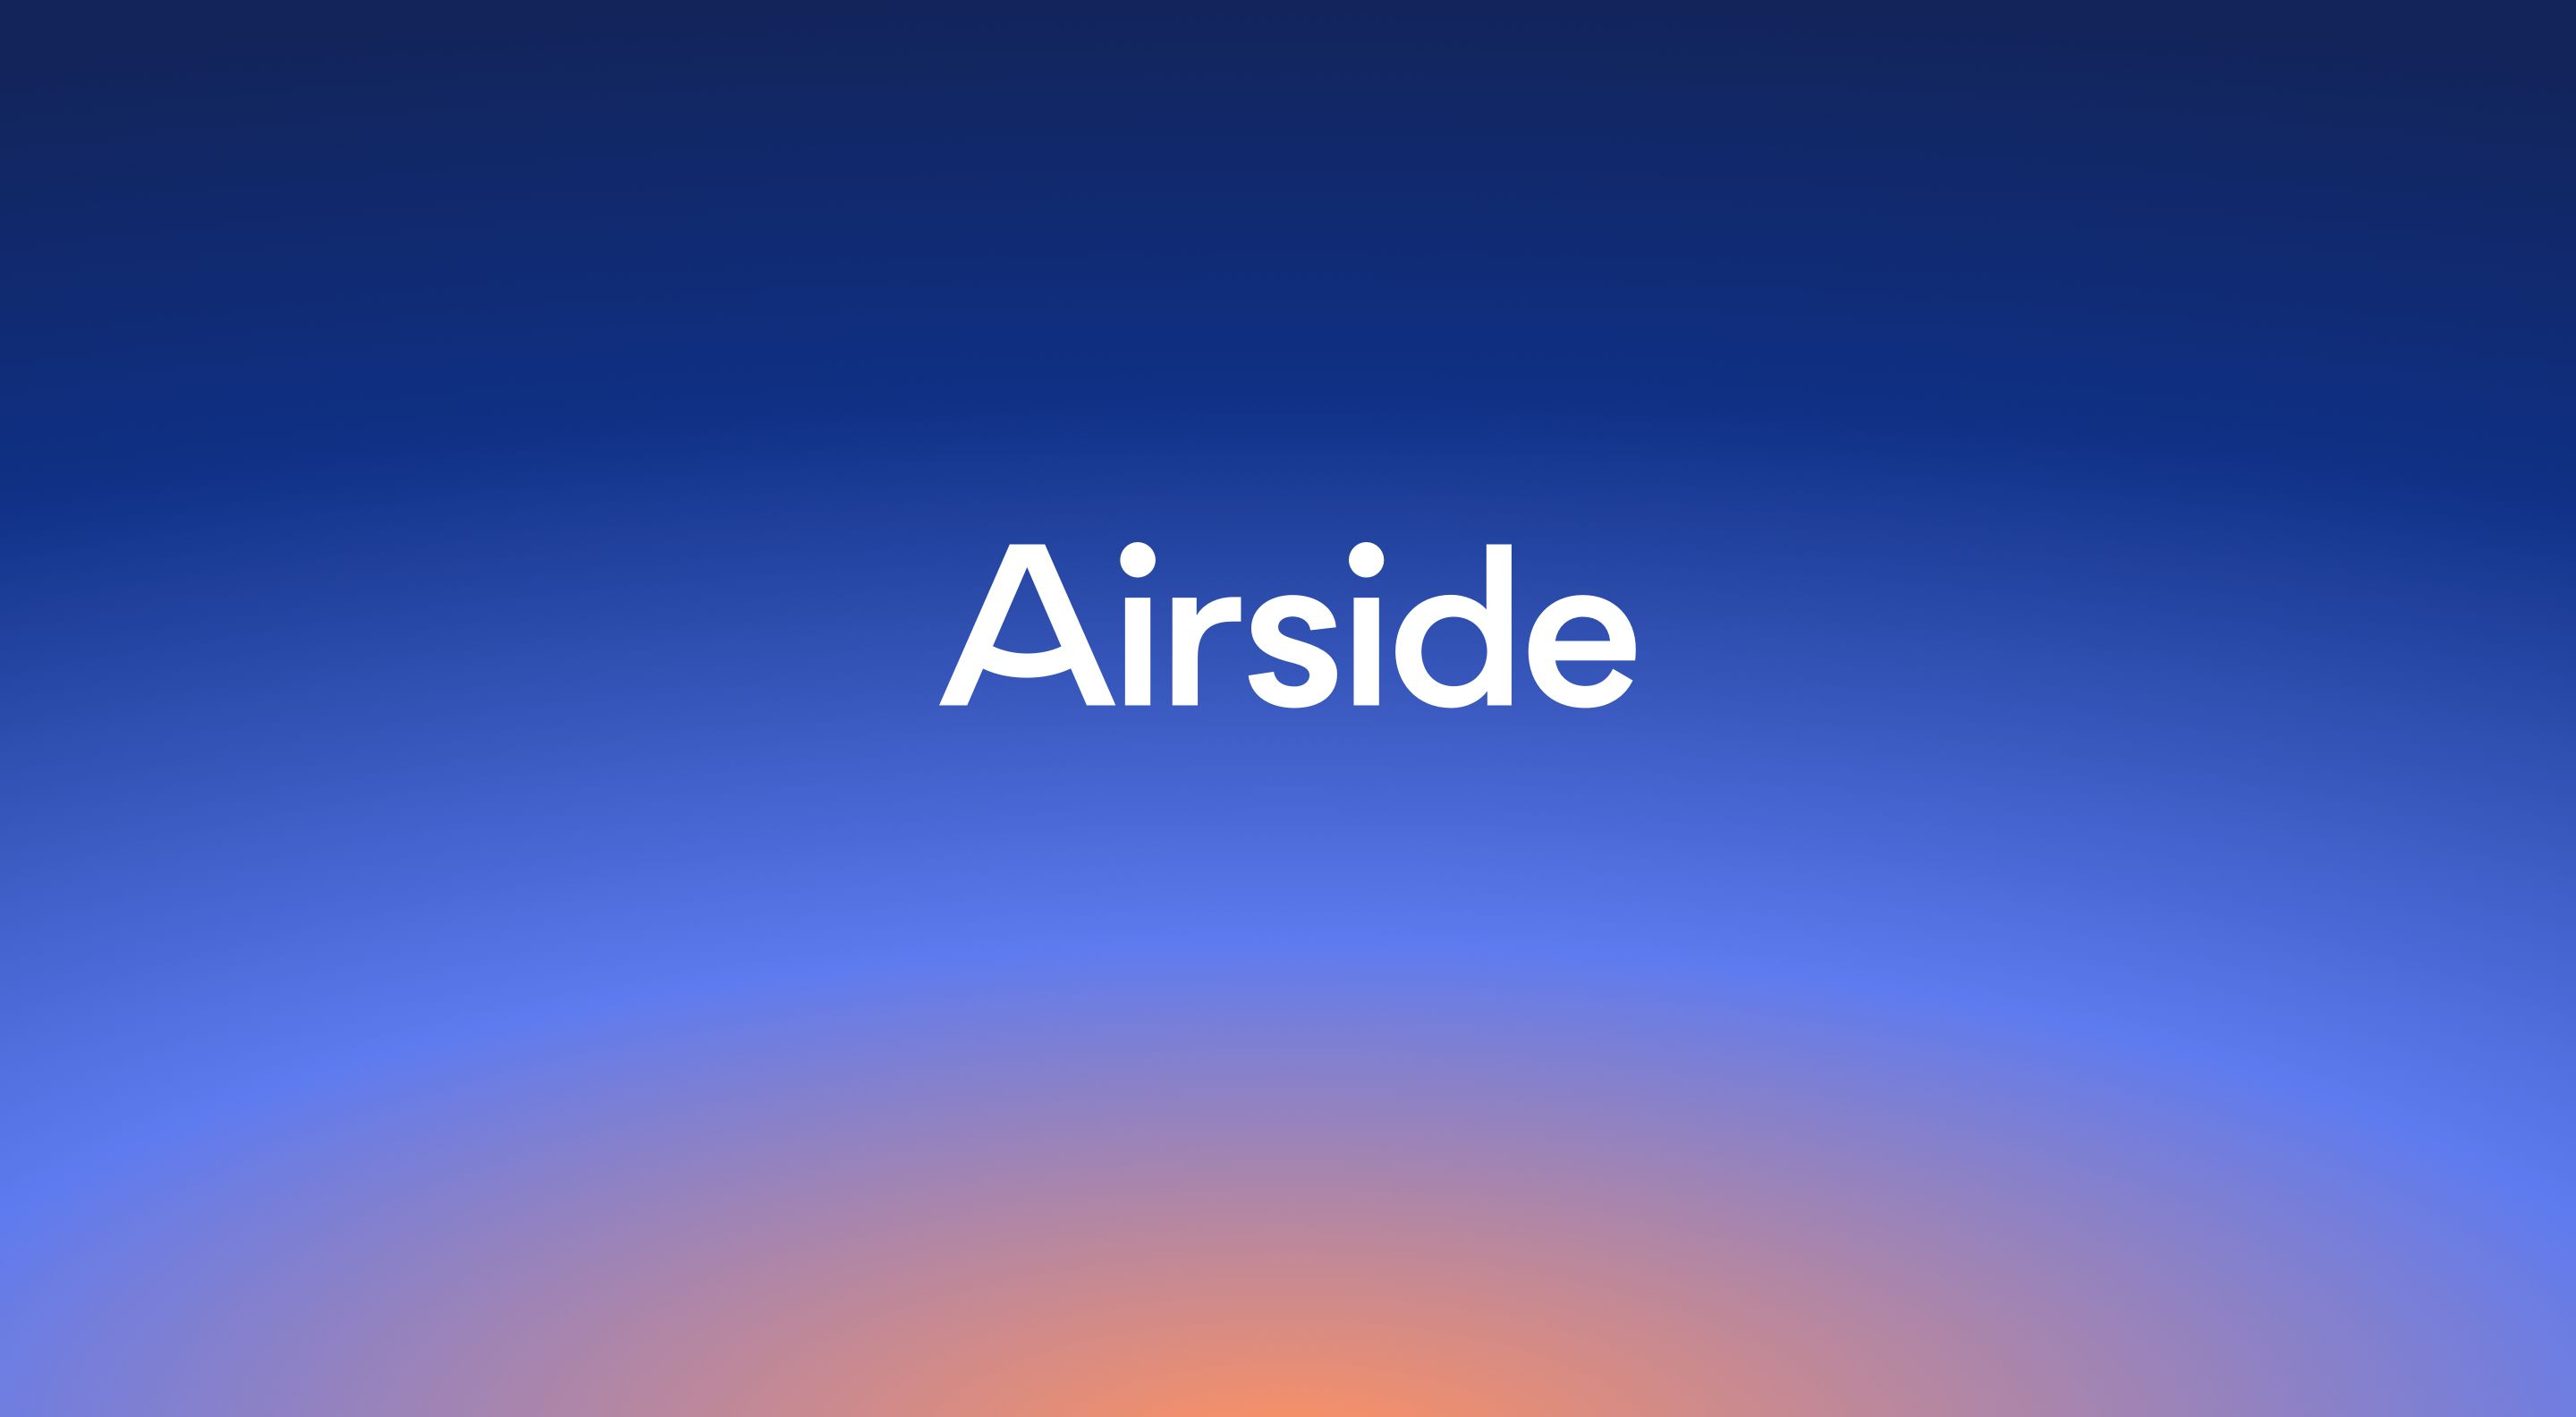 Airside Digital Identity Network and App